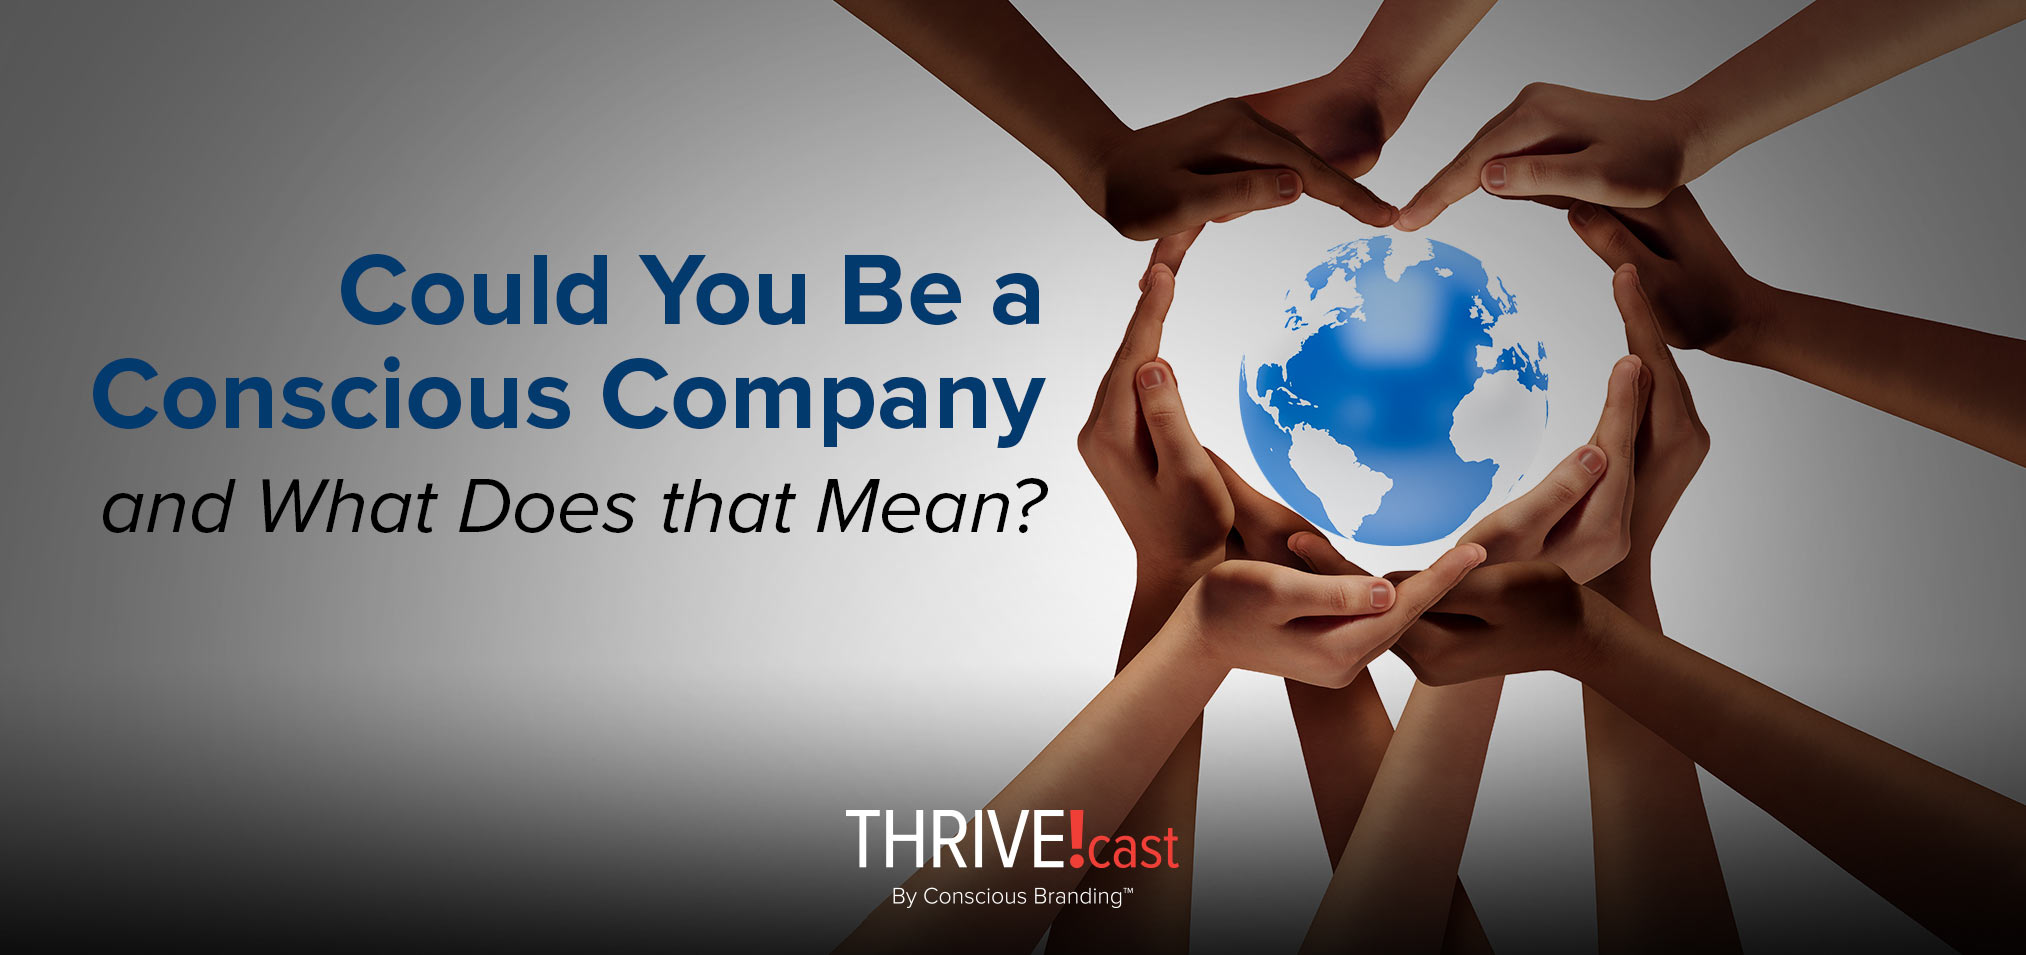 Thrive - Could You Be a Conscious Company and What Does that Mean